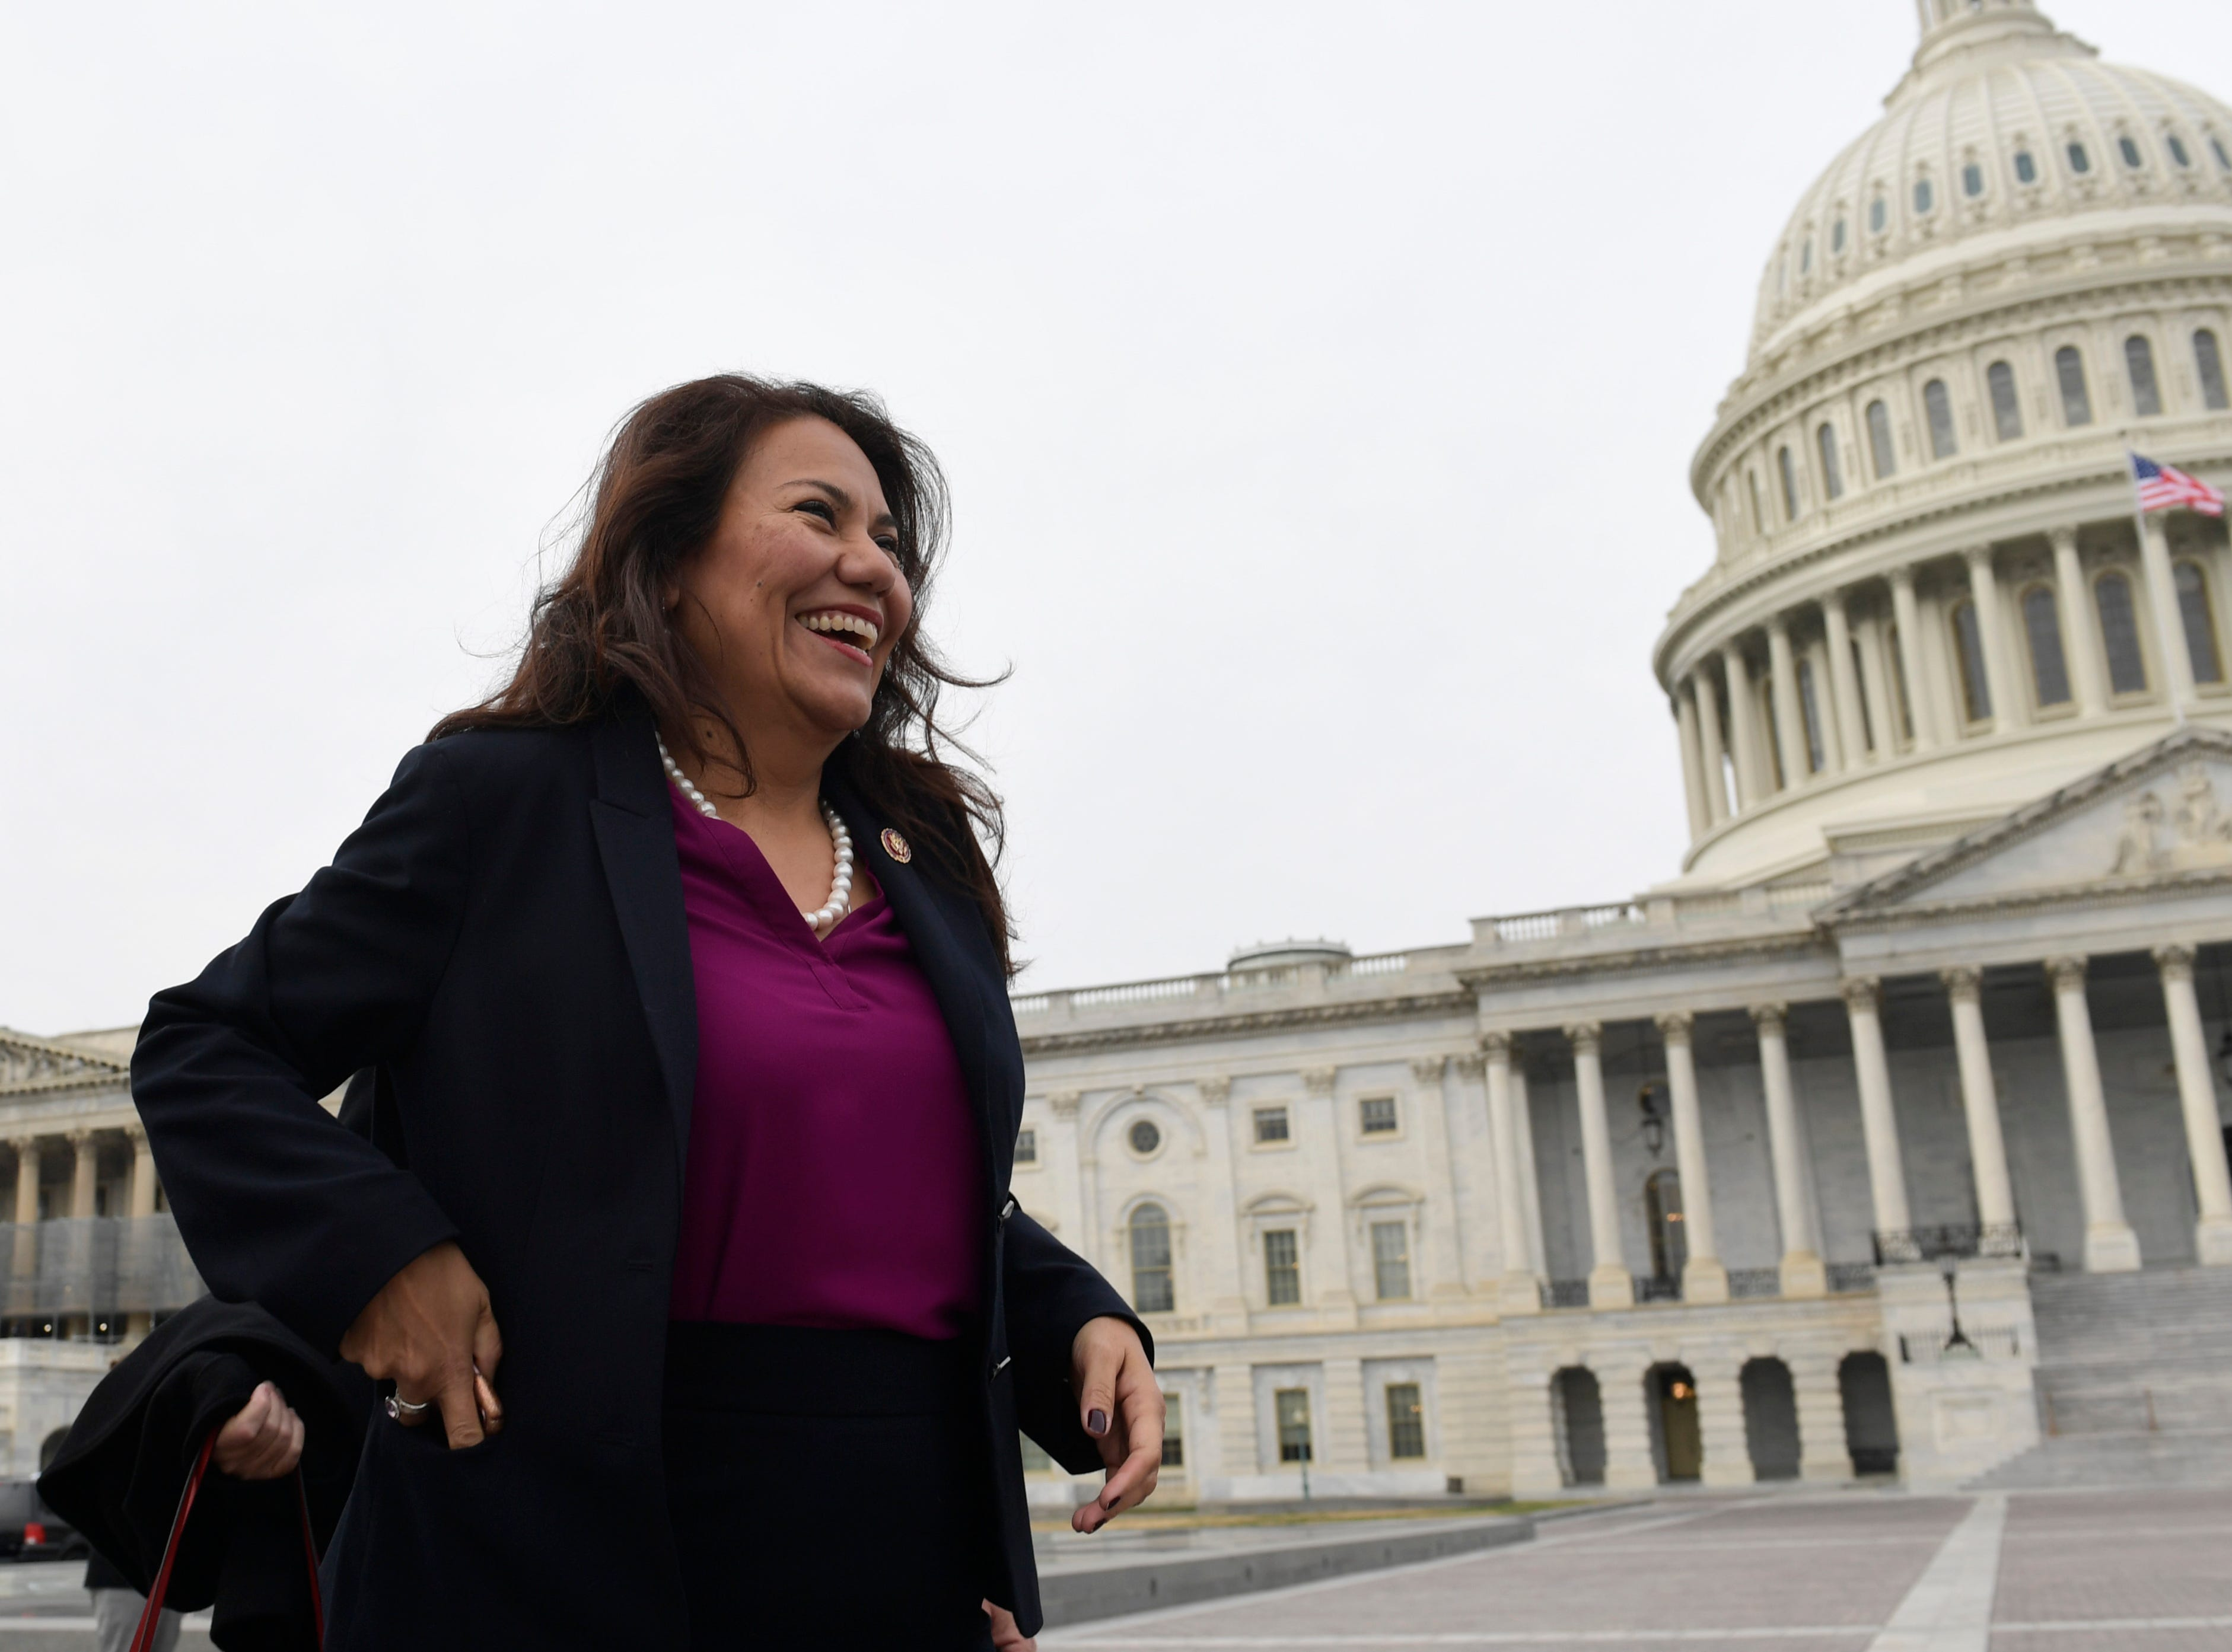 U.S. Rep. Veronica Escobar, D-El Paso, arrives for a group photo with the women of the 116th Congress on Capitol Hill in Washington on Friday, Jan. 4, 2019.